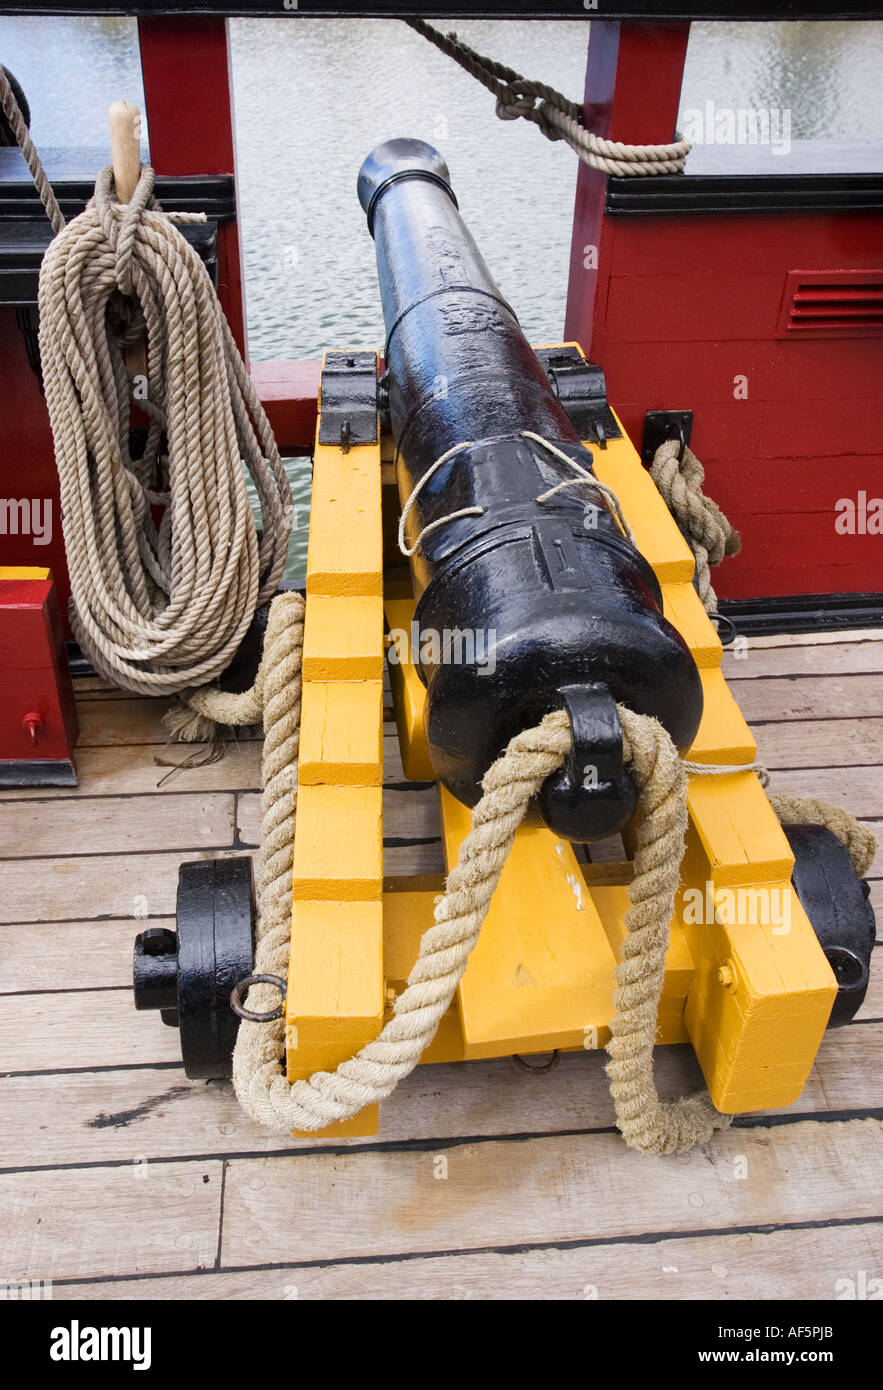 Ships Cannon Stock Photos & Ships Cannon Stock Images - Alamy